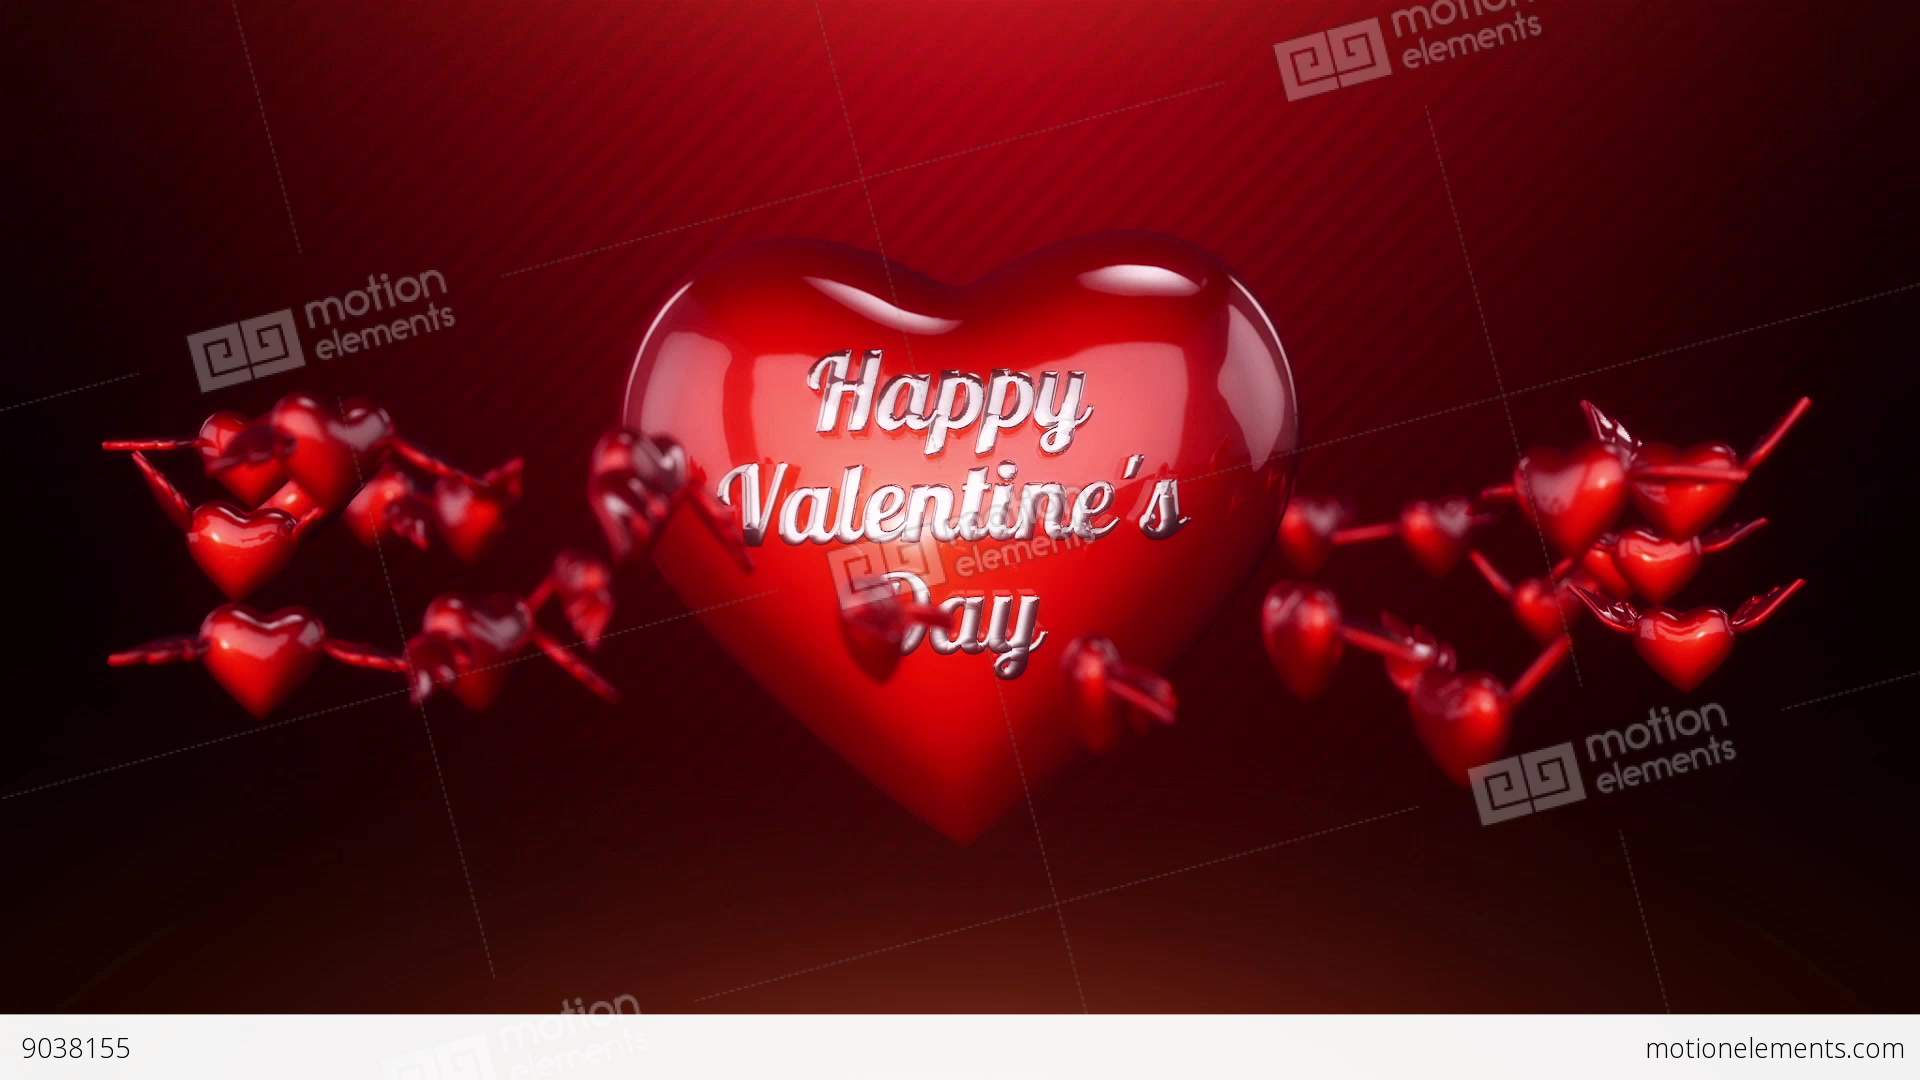 Hearts and angel wings background animation for valentines day and hearts and angel wings background animation for stock video footage biocorpaavc